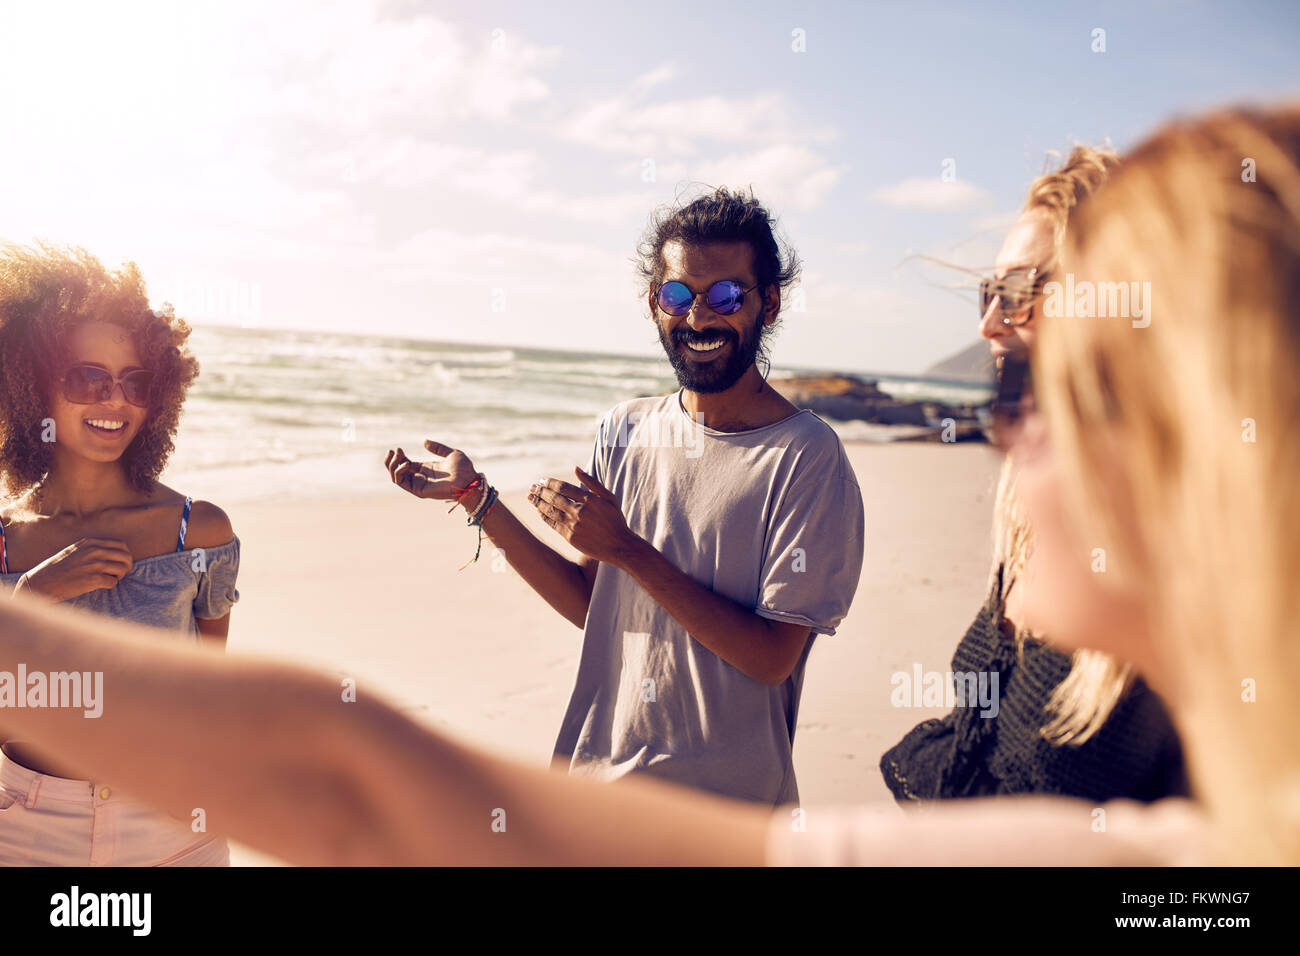 Diverse group of young people standing together and talking. Friends enjoying themselves on a sunny day at the beach. - Stock Image